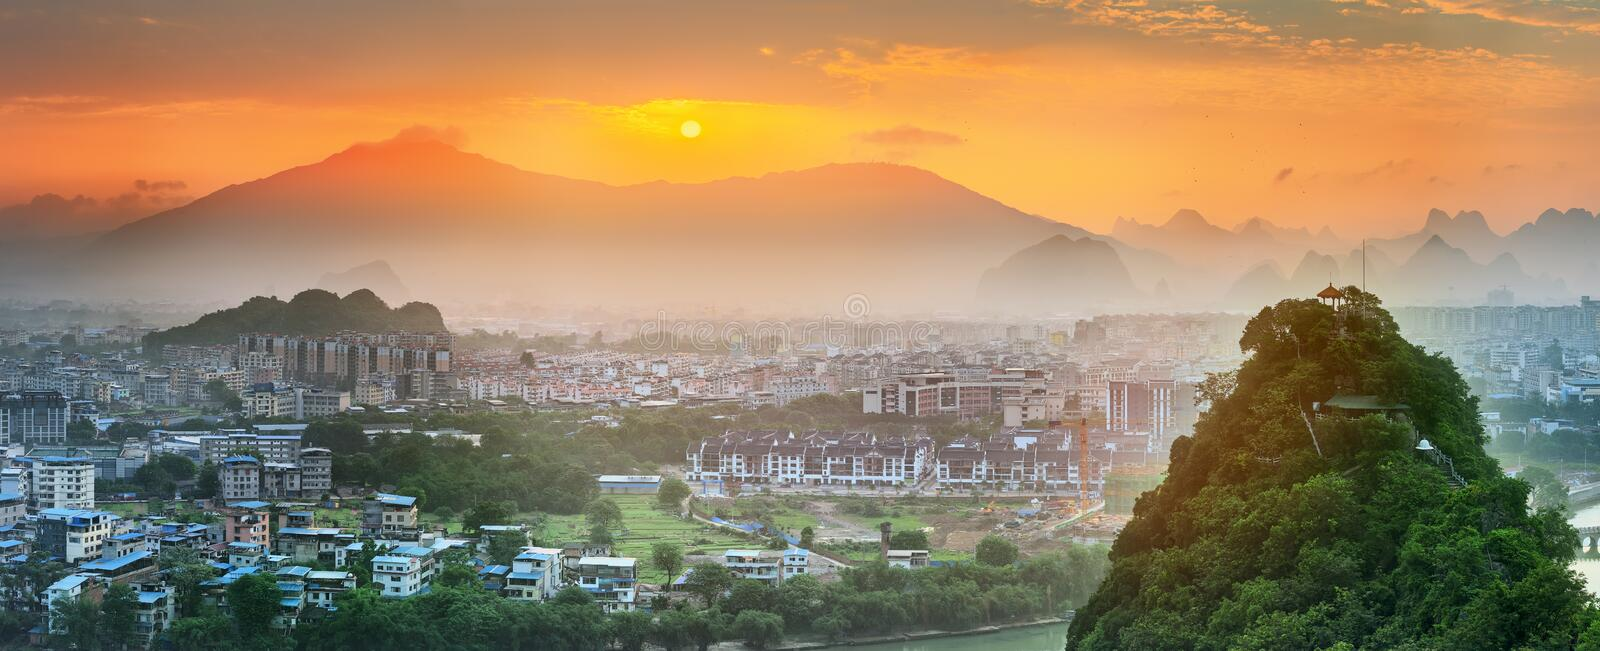 Landscape of Guilin, Li River and Karst mountains. Located near Yangshuo County, Guangxi Province, China.  stock photography